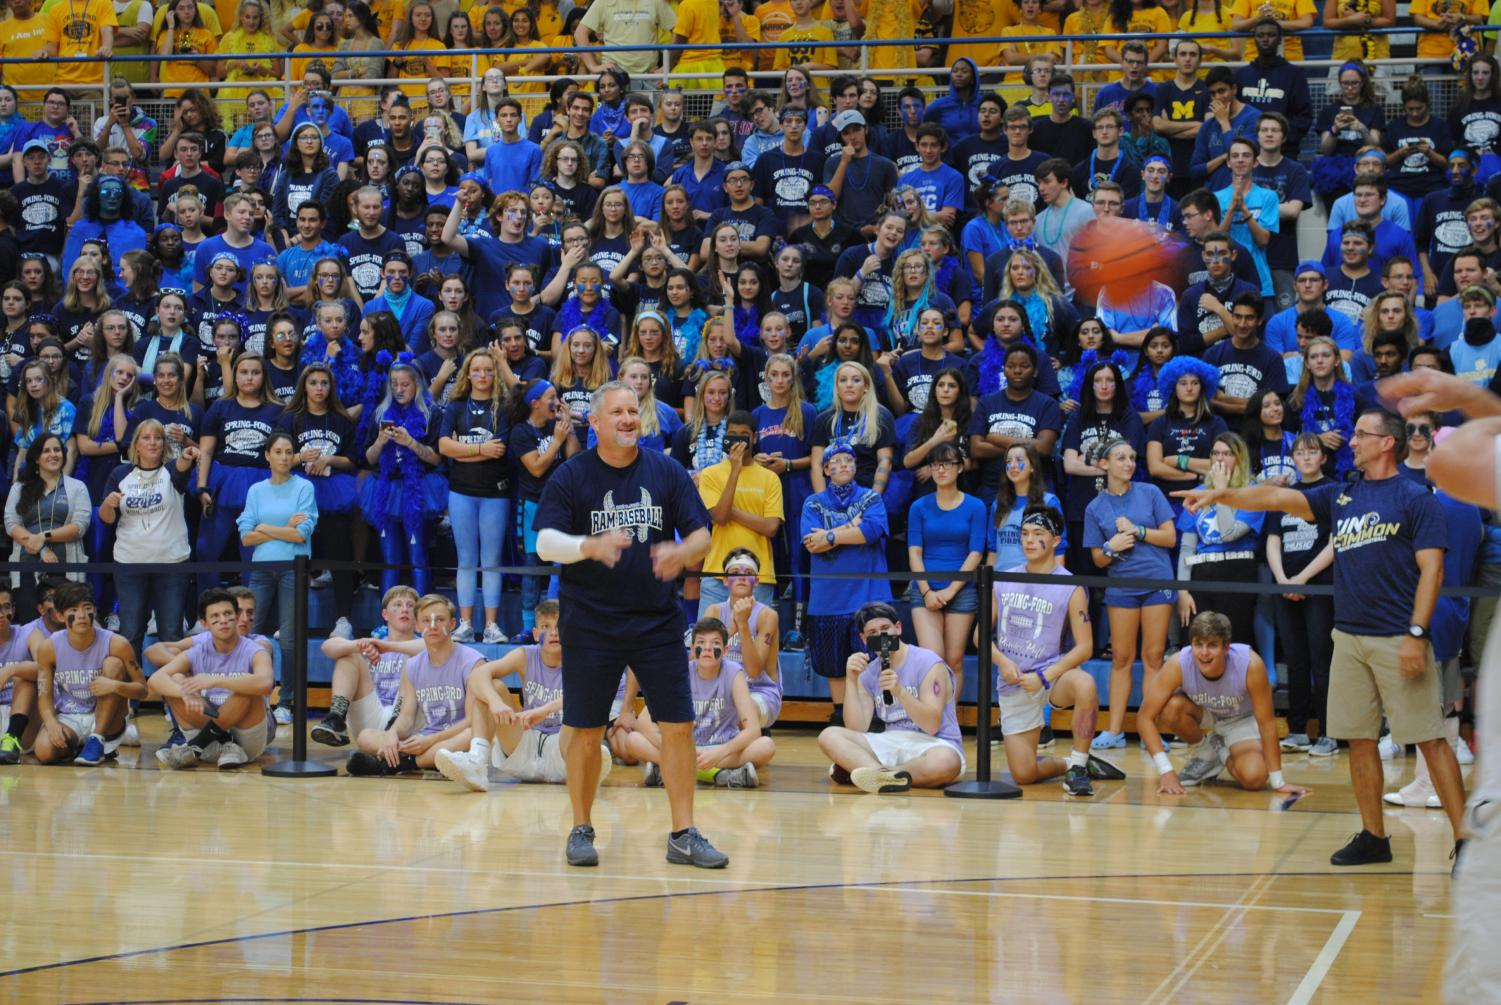 Teachers Jamie Scheck (left) and Jim Mich take part in the three-point contest during the Pep Rally.